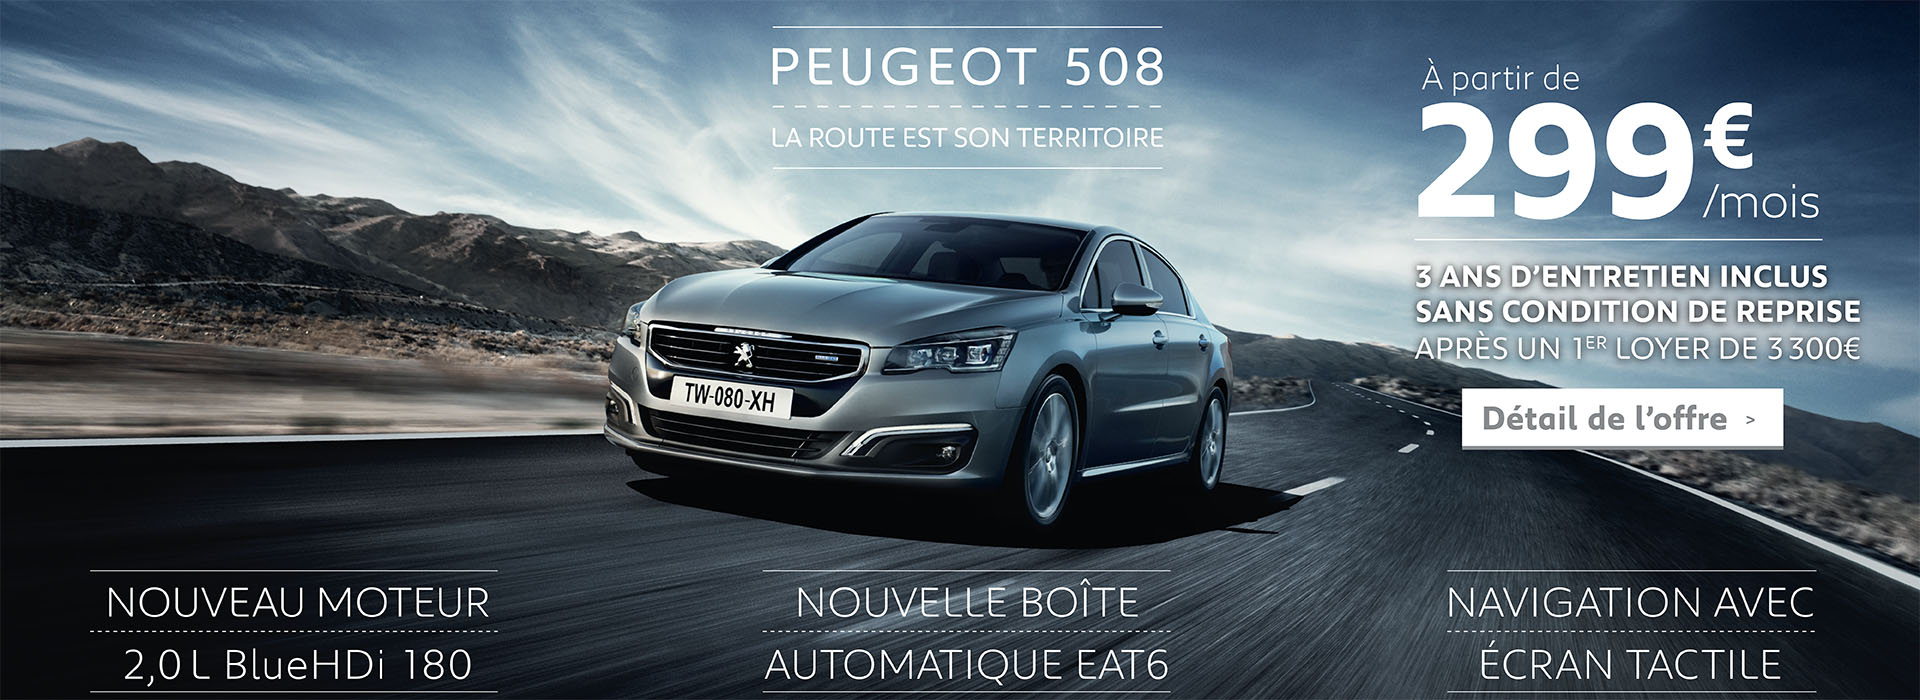 peugeot sedan vente voiture neuve vehicule occasion autos post. Black Bedroom Furniture Sets. Home Design Ideas